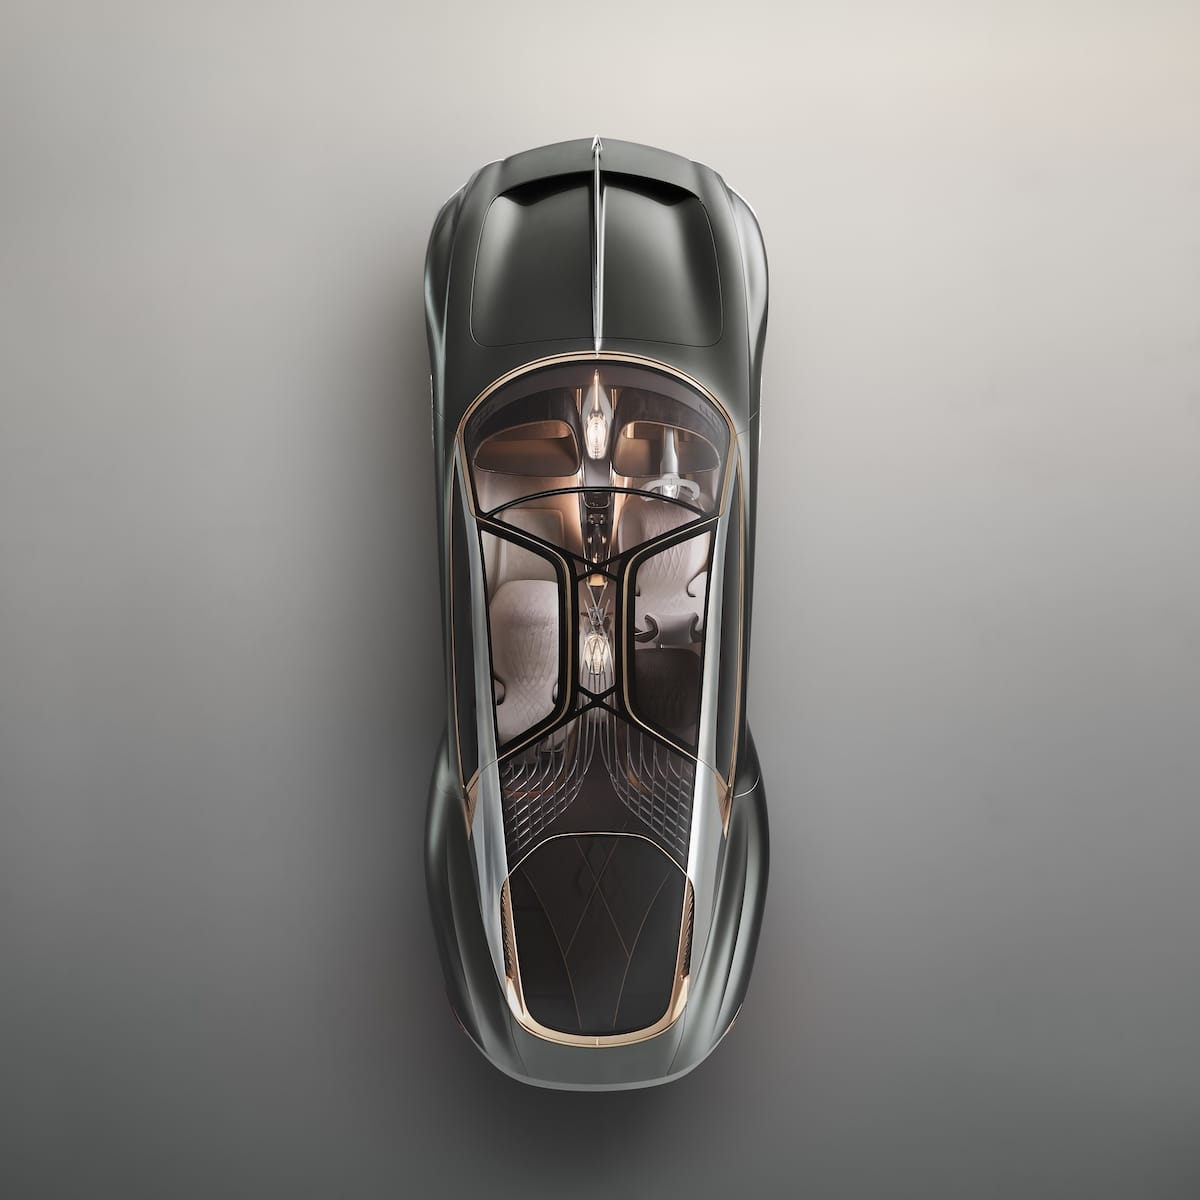 Overhead View of a Luxury Vehicle